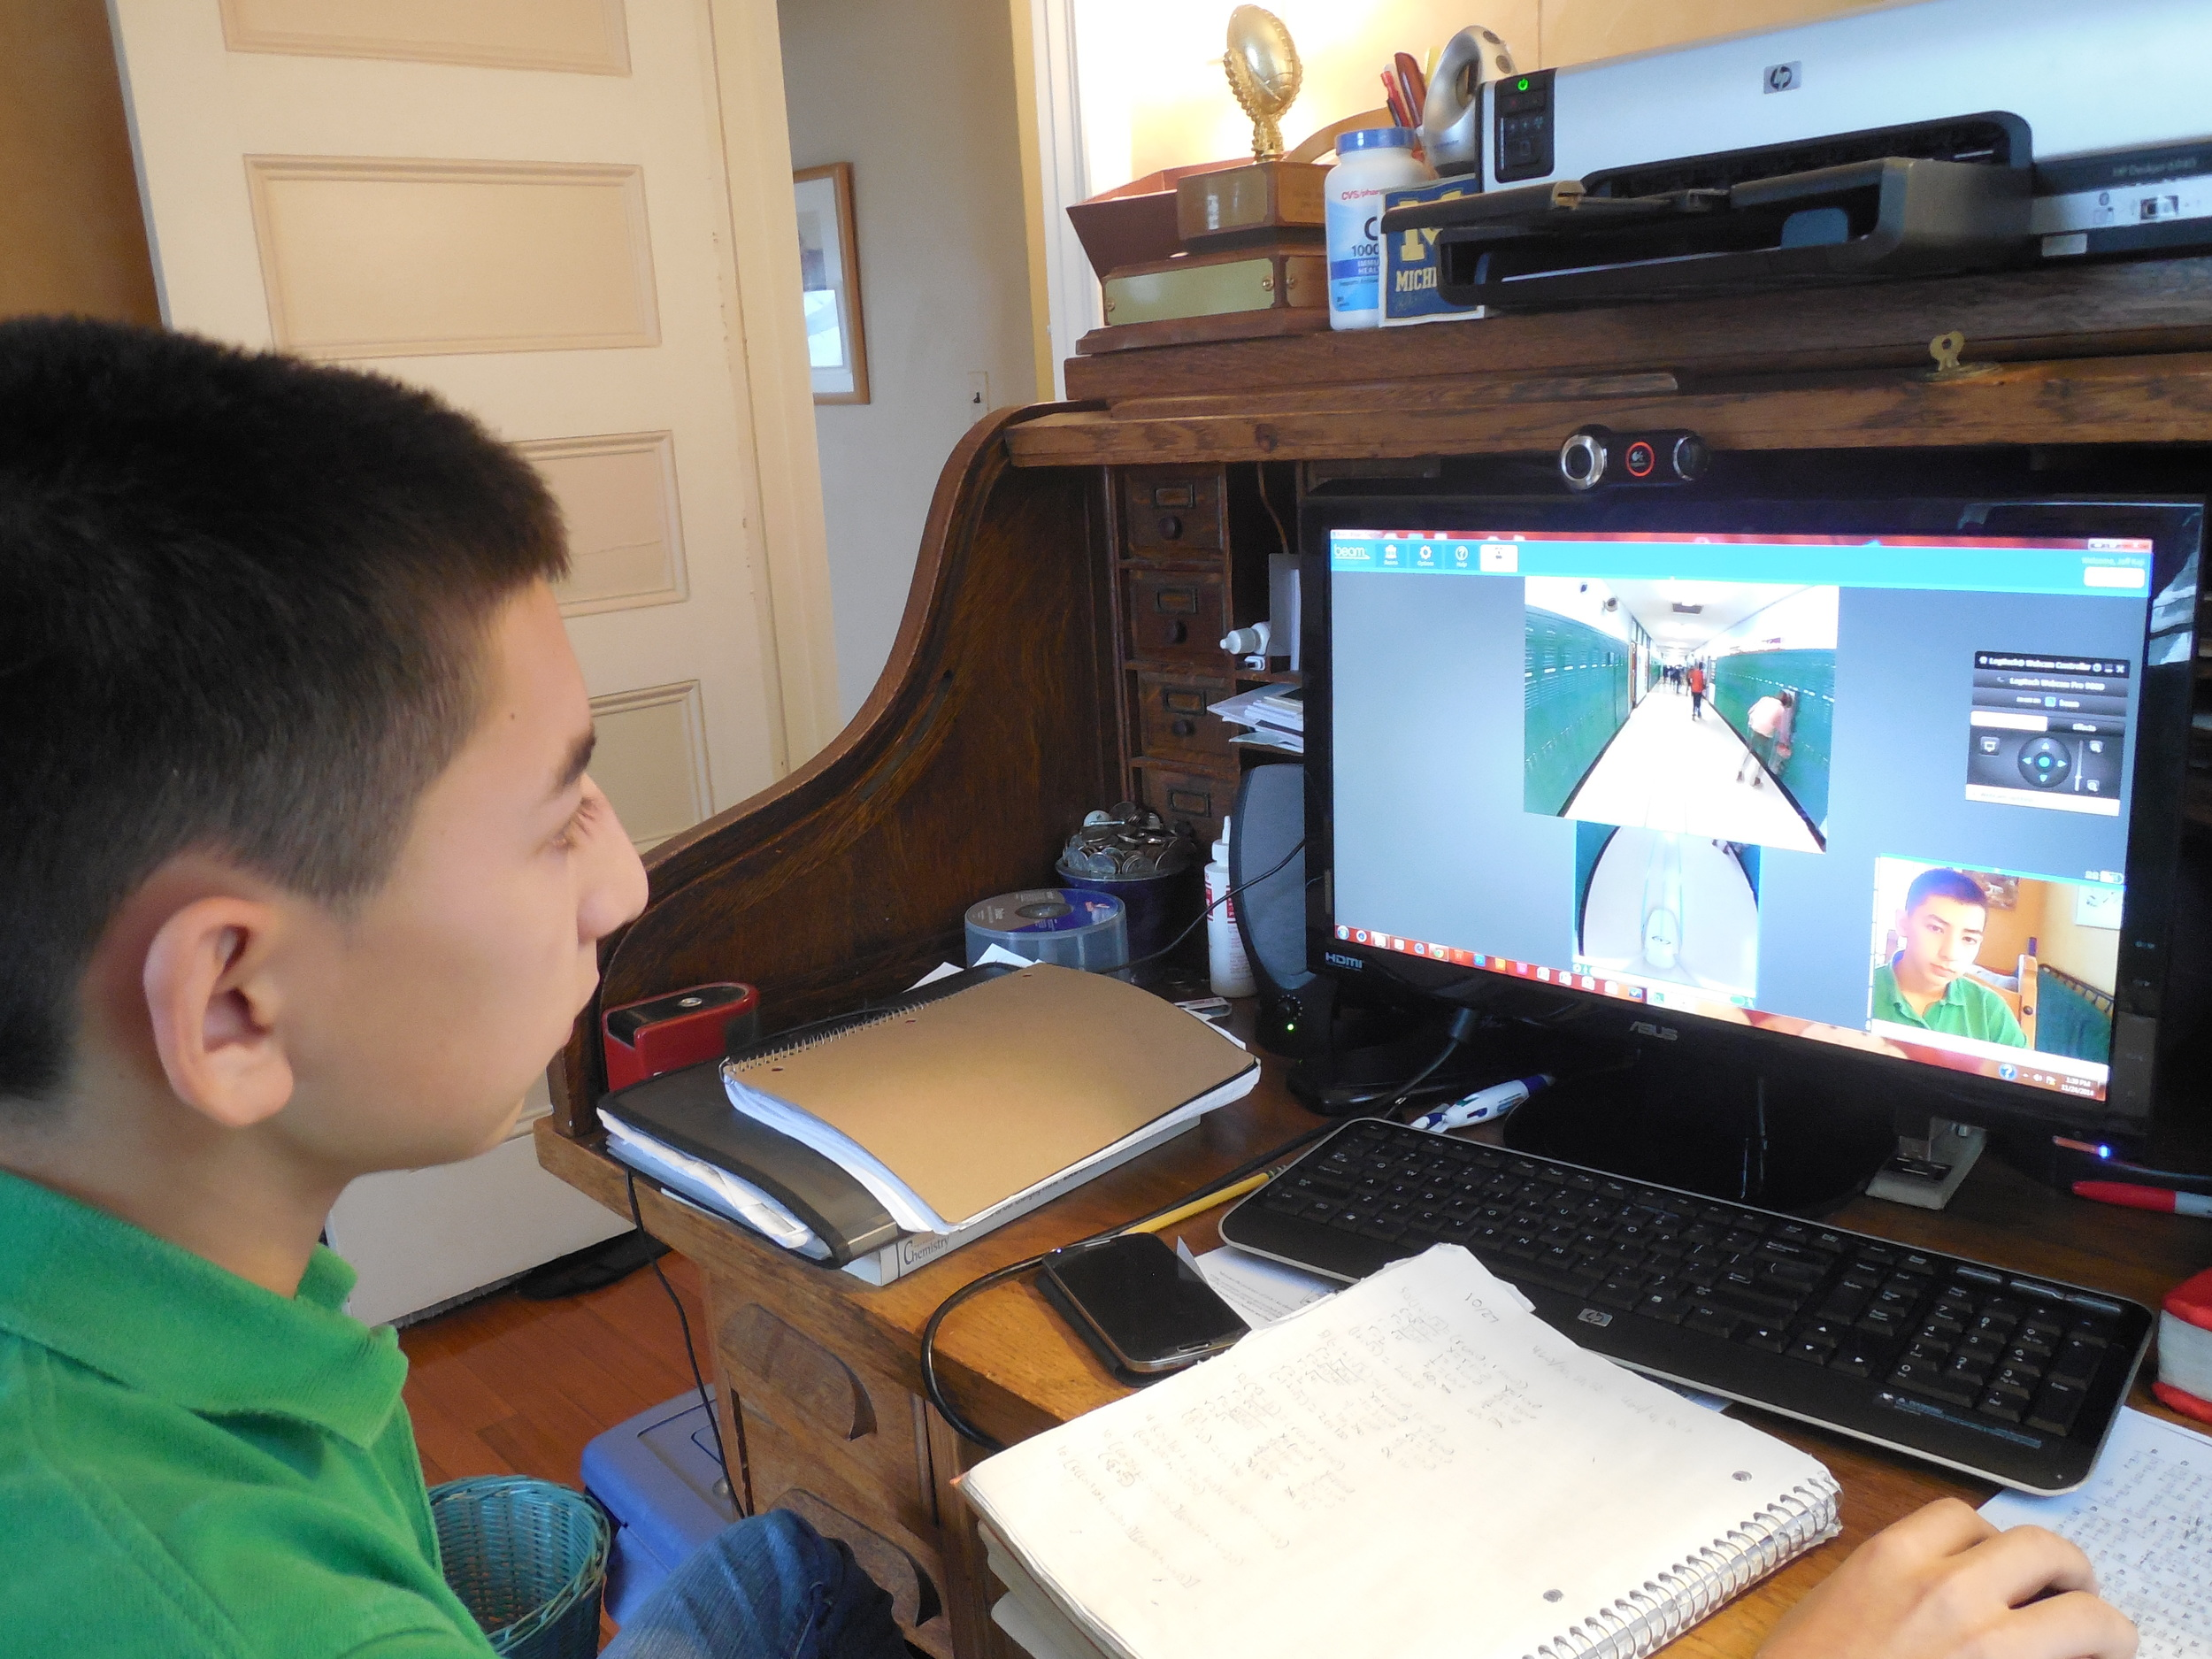 Jeffrey Kaji can see the school hallways via the robot's video camera, as he sits at home.